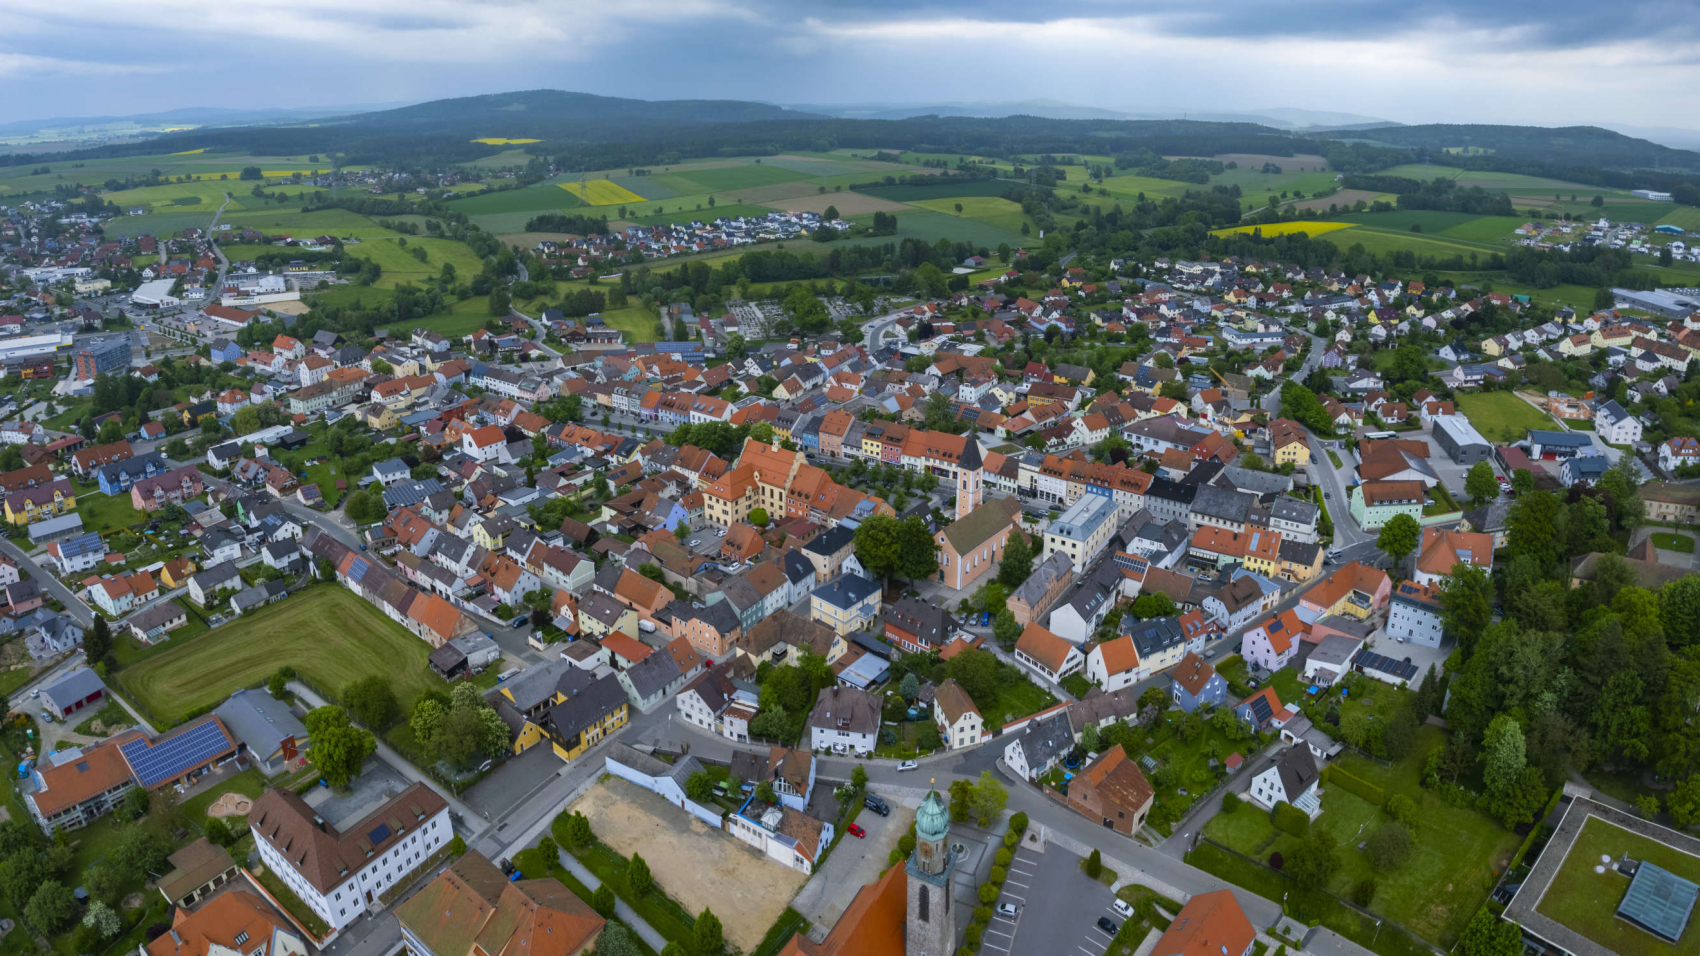 Aerial view of the city Vohenstrauß in Germany, on a cloudy day in spring.